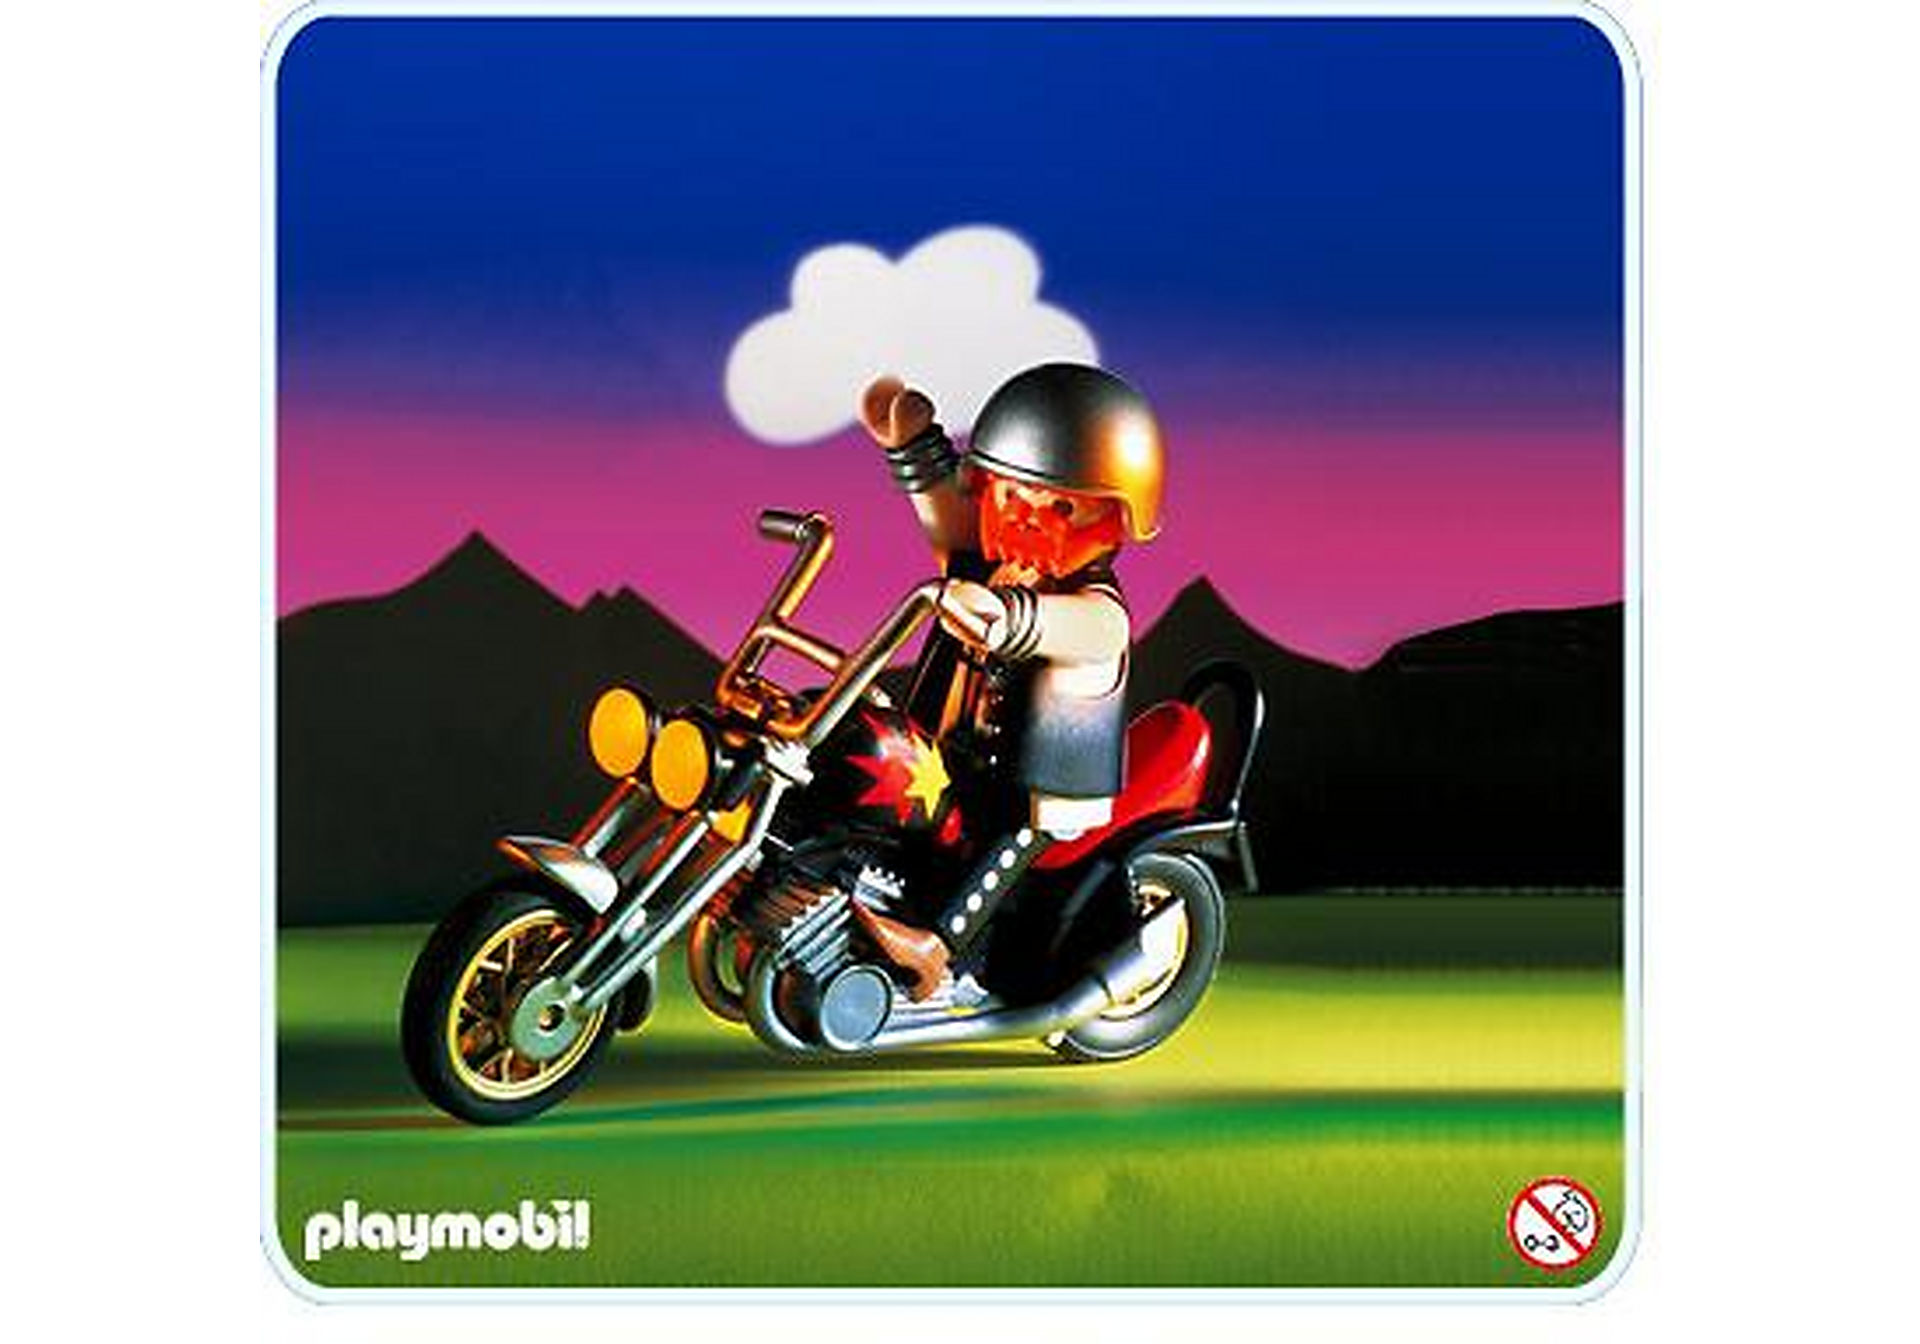 http://media.playmobil.com/i/playmobil/3831-A_product_detail/Motard / Chopper